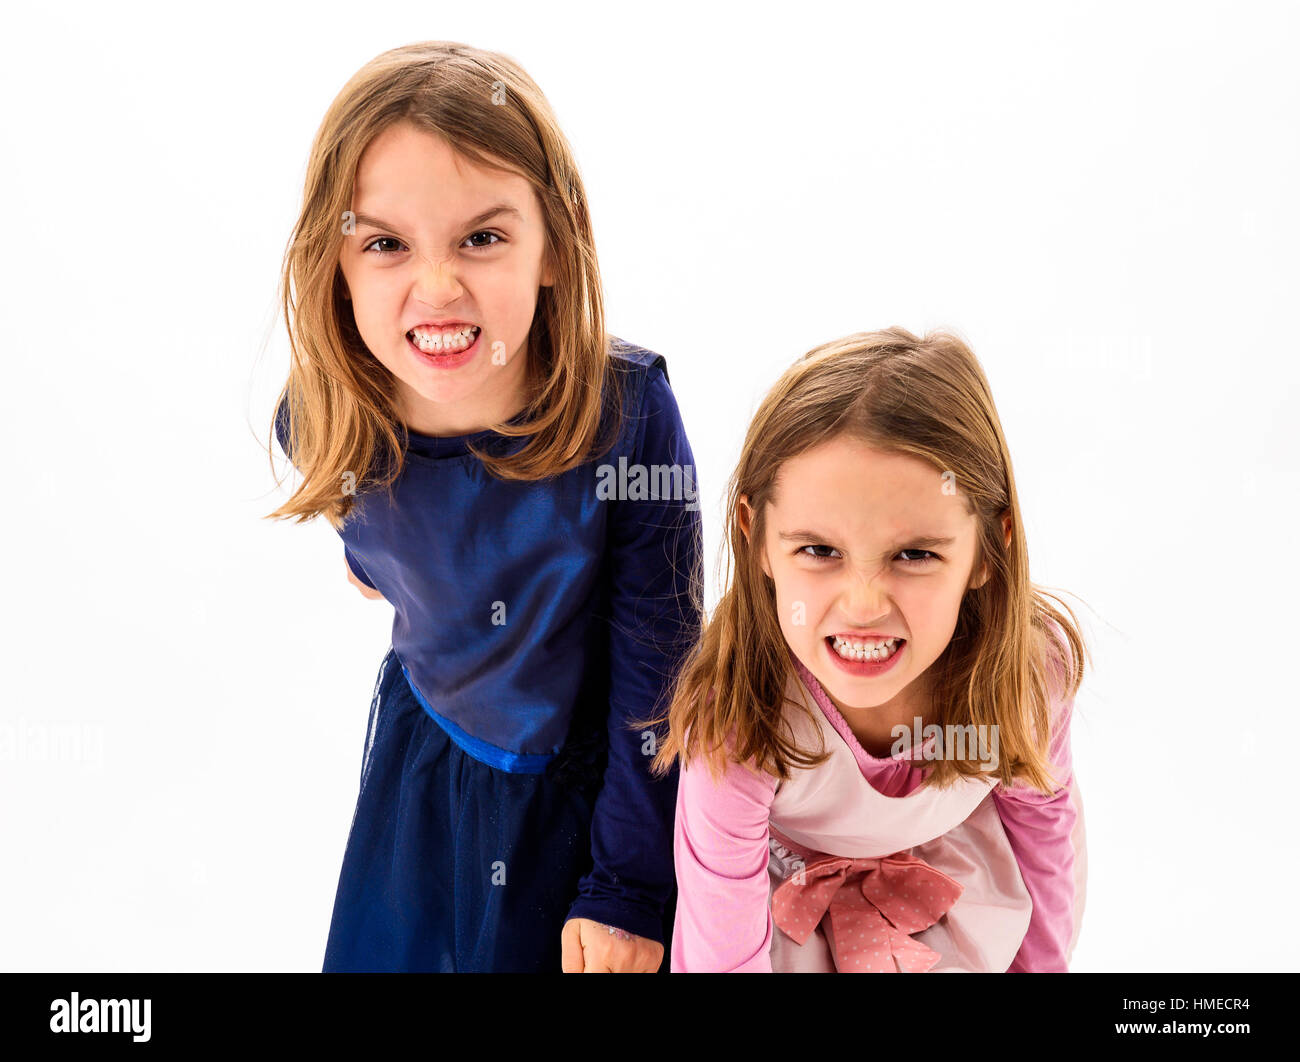 Twin girls are angry, mad and disobedient with bad behavior. Children making the act of insubordination and disobedience, - Stock Image